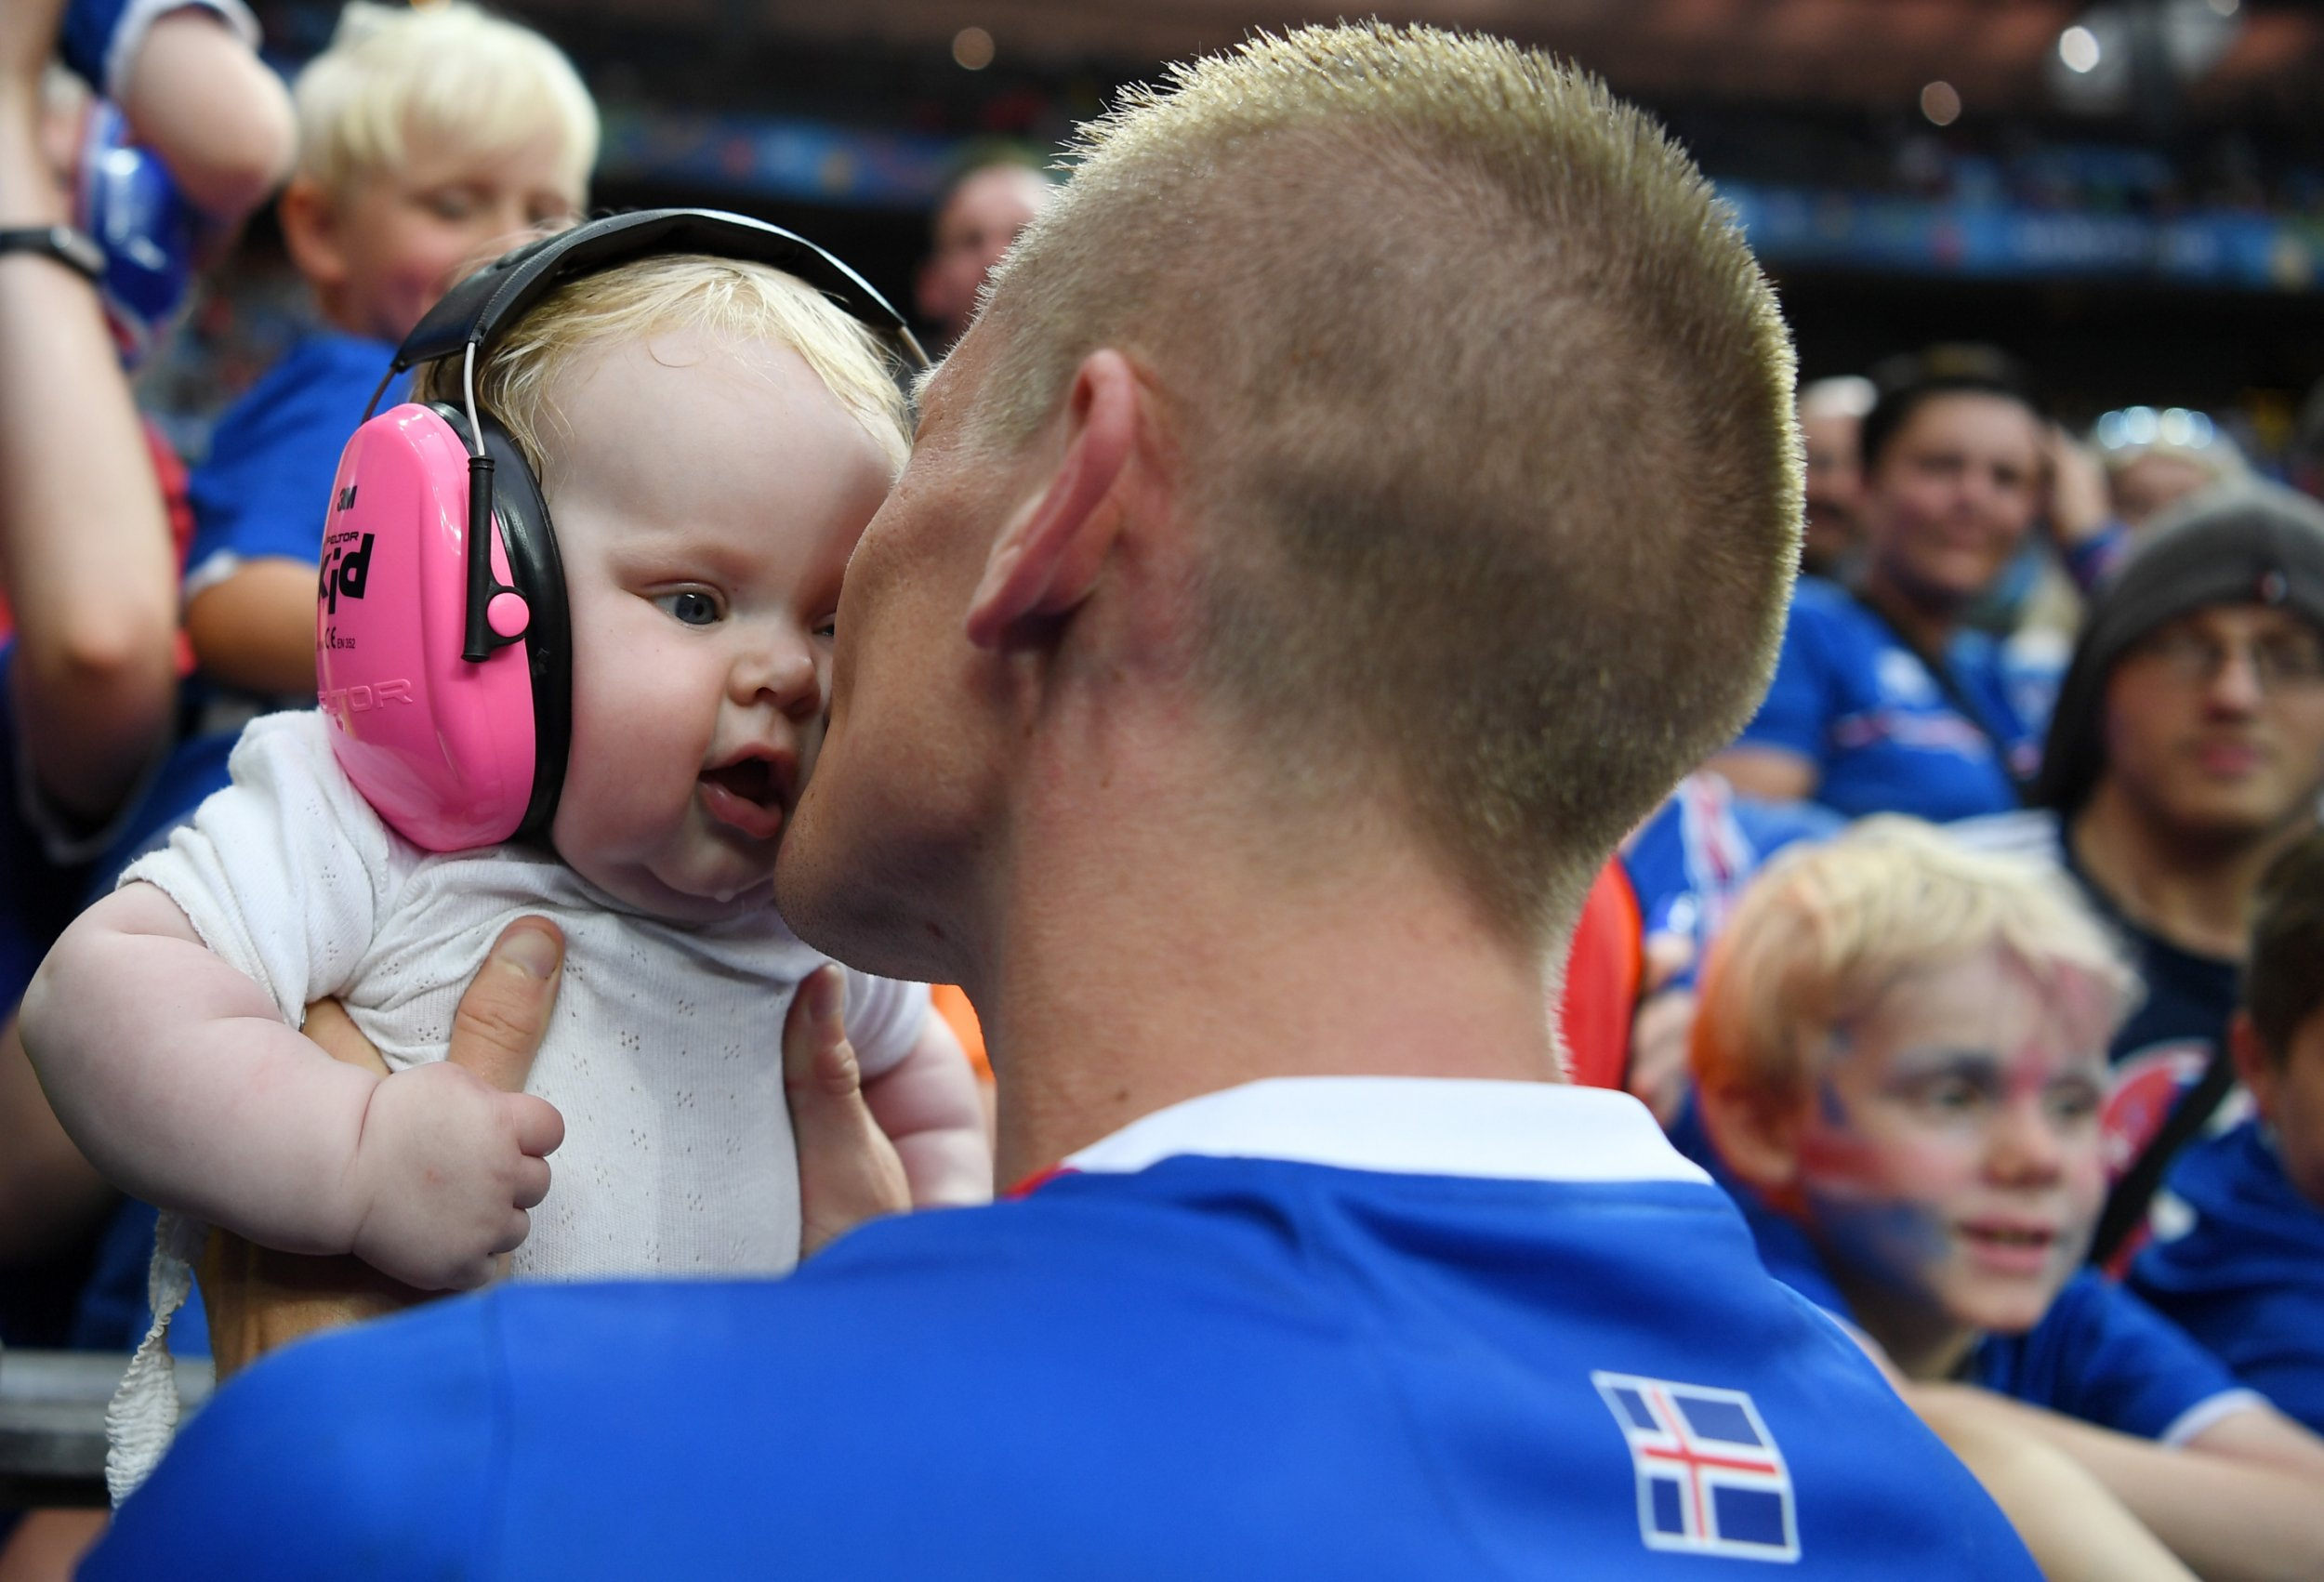 PARIS, FRANCE - JUNE 22: Ari Skulason of Iceland kisses to his child to celebrate his team's 2-1 win with his children after the UEFA EURO 2016 Group F match between Iceland and Austria at Stade de France on June 22, 2016 in Paris, France. (Photo by Shaun Botterill/Getty Images)